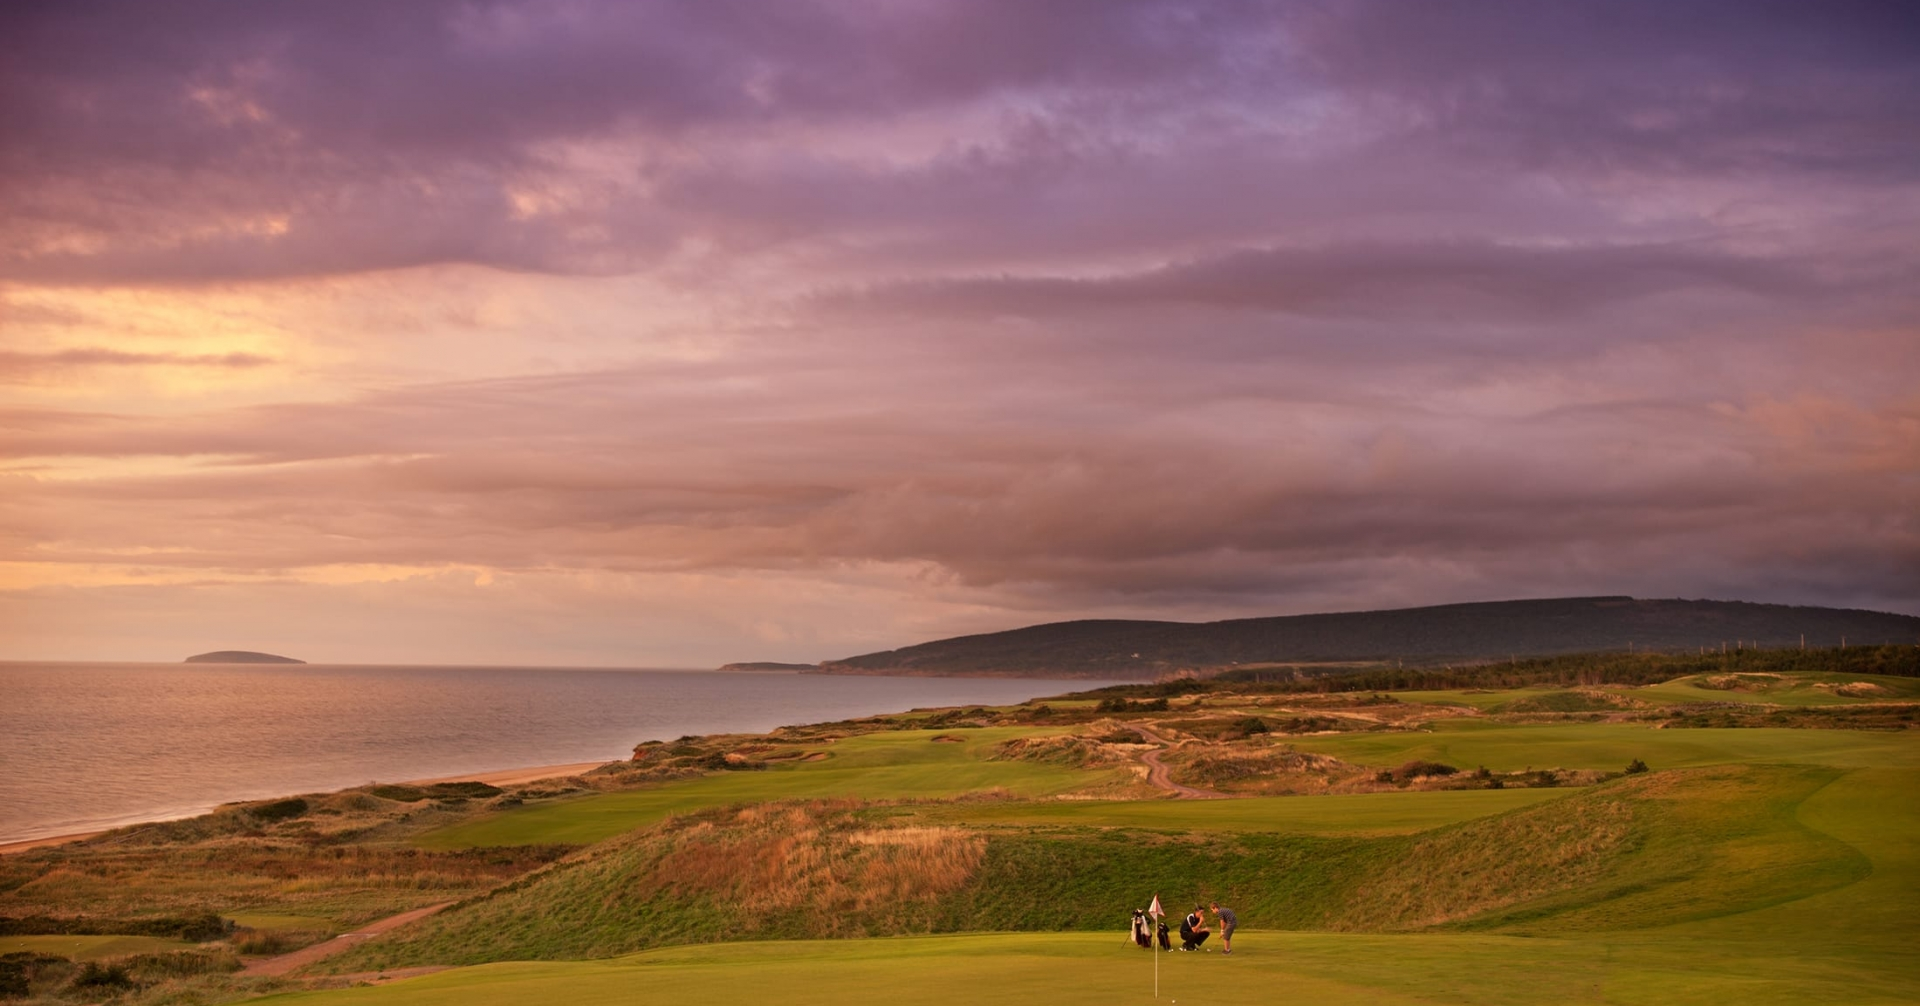 A golf course overlooking the ocean at sunset